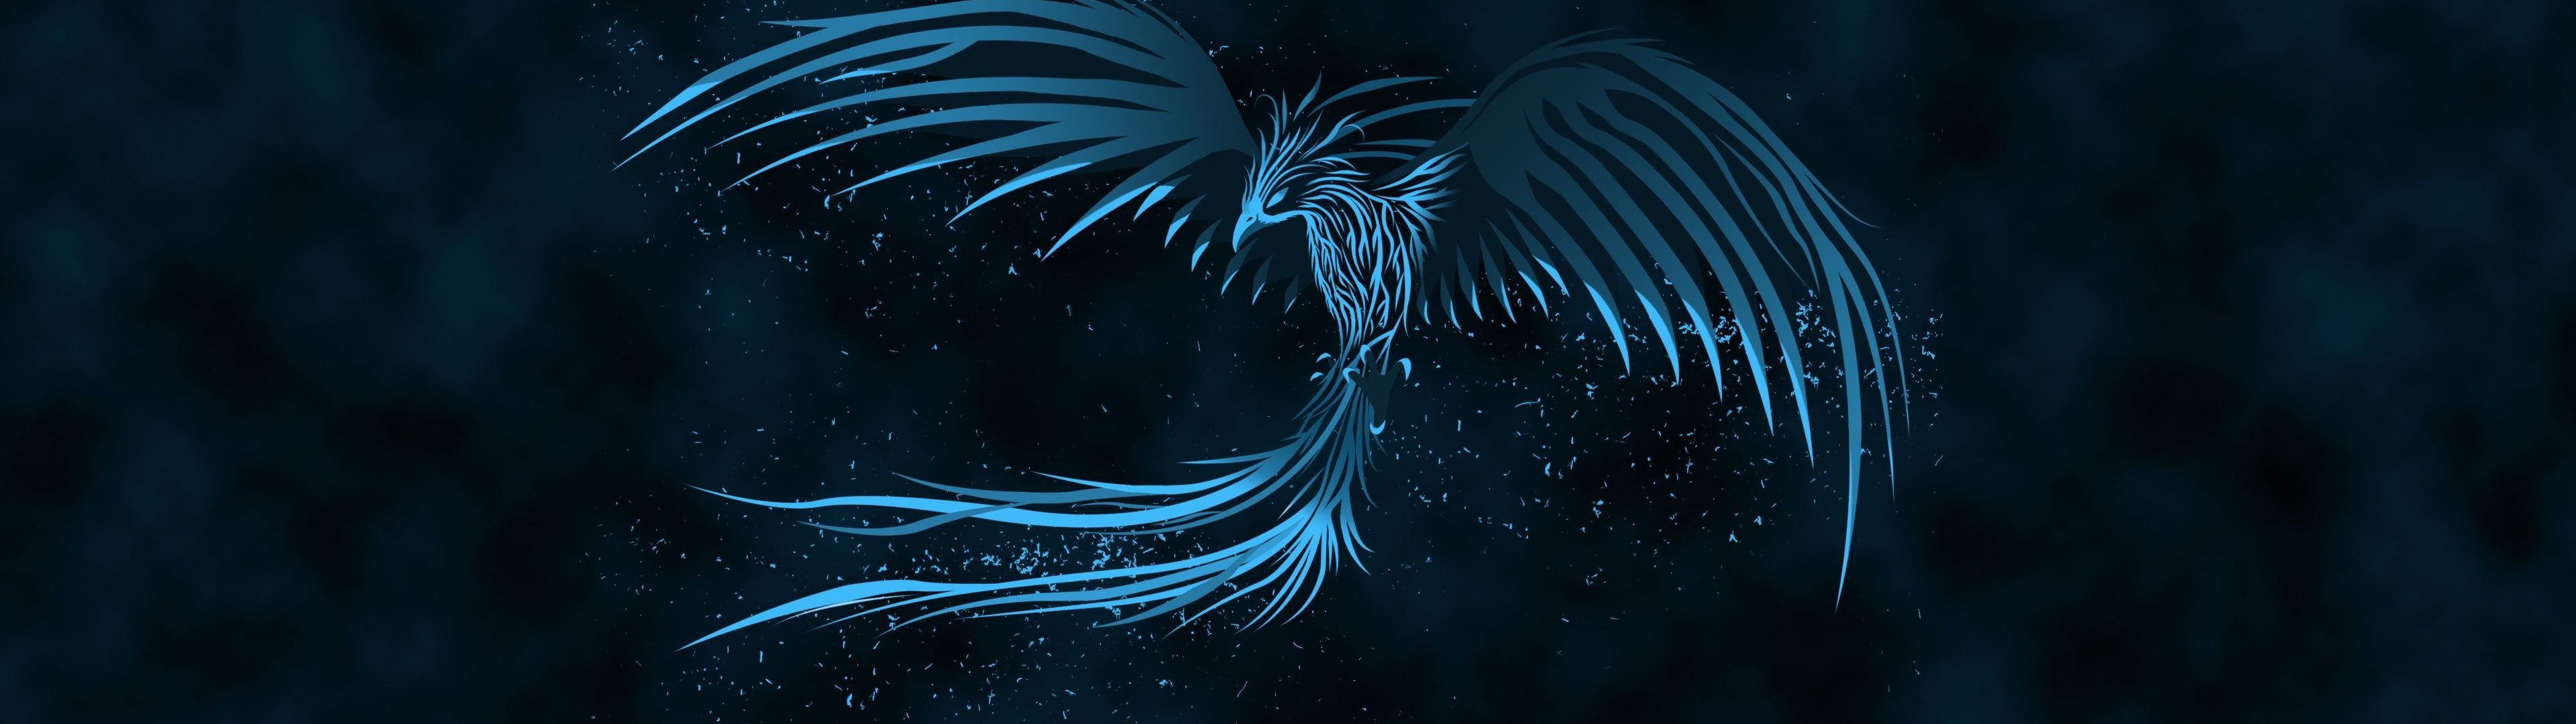 Blue-Phoenix-Dual-Monitor-x1080-wallpaper-wp3803332